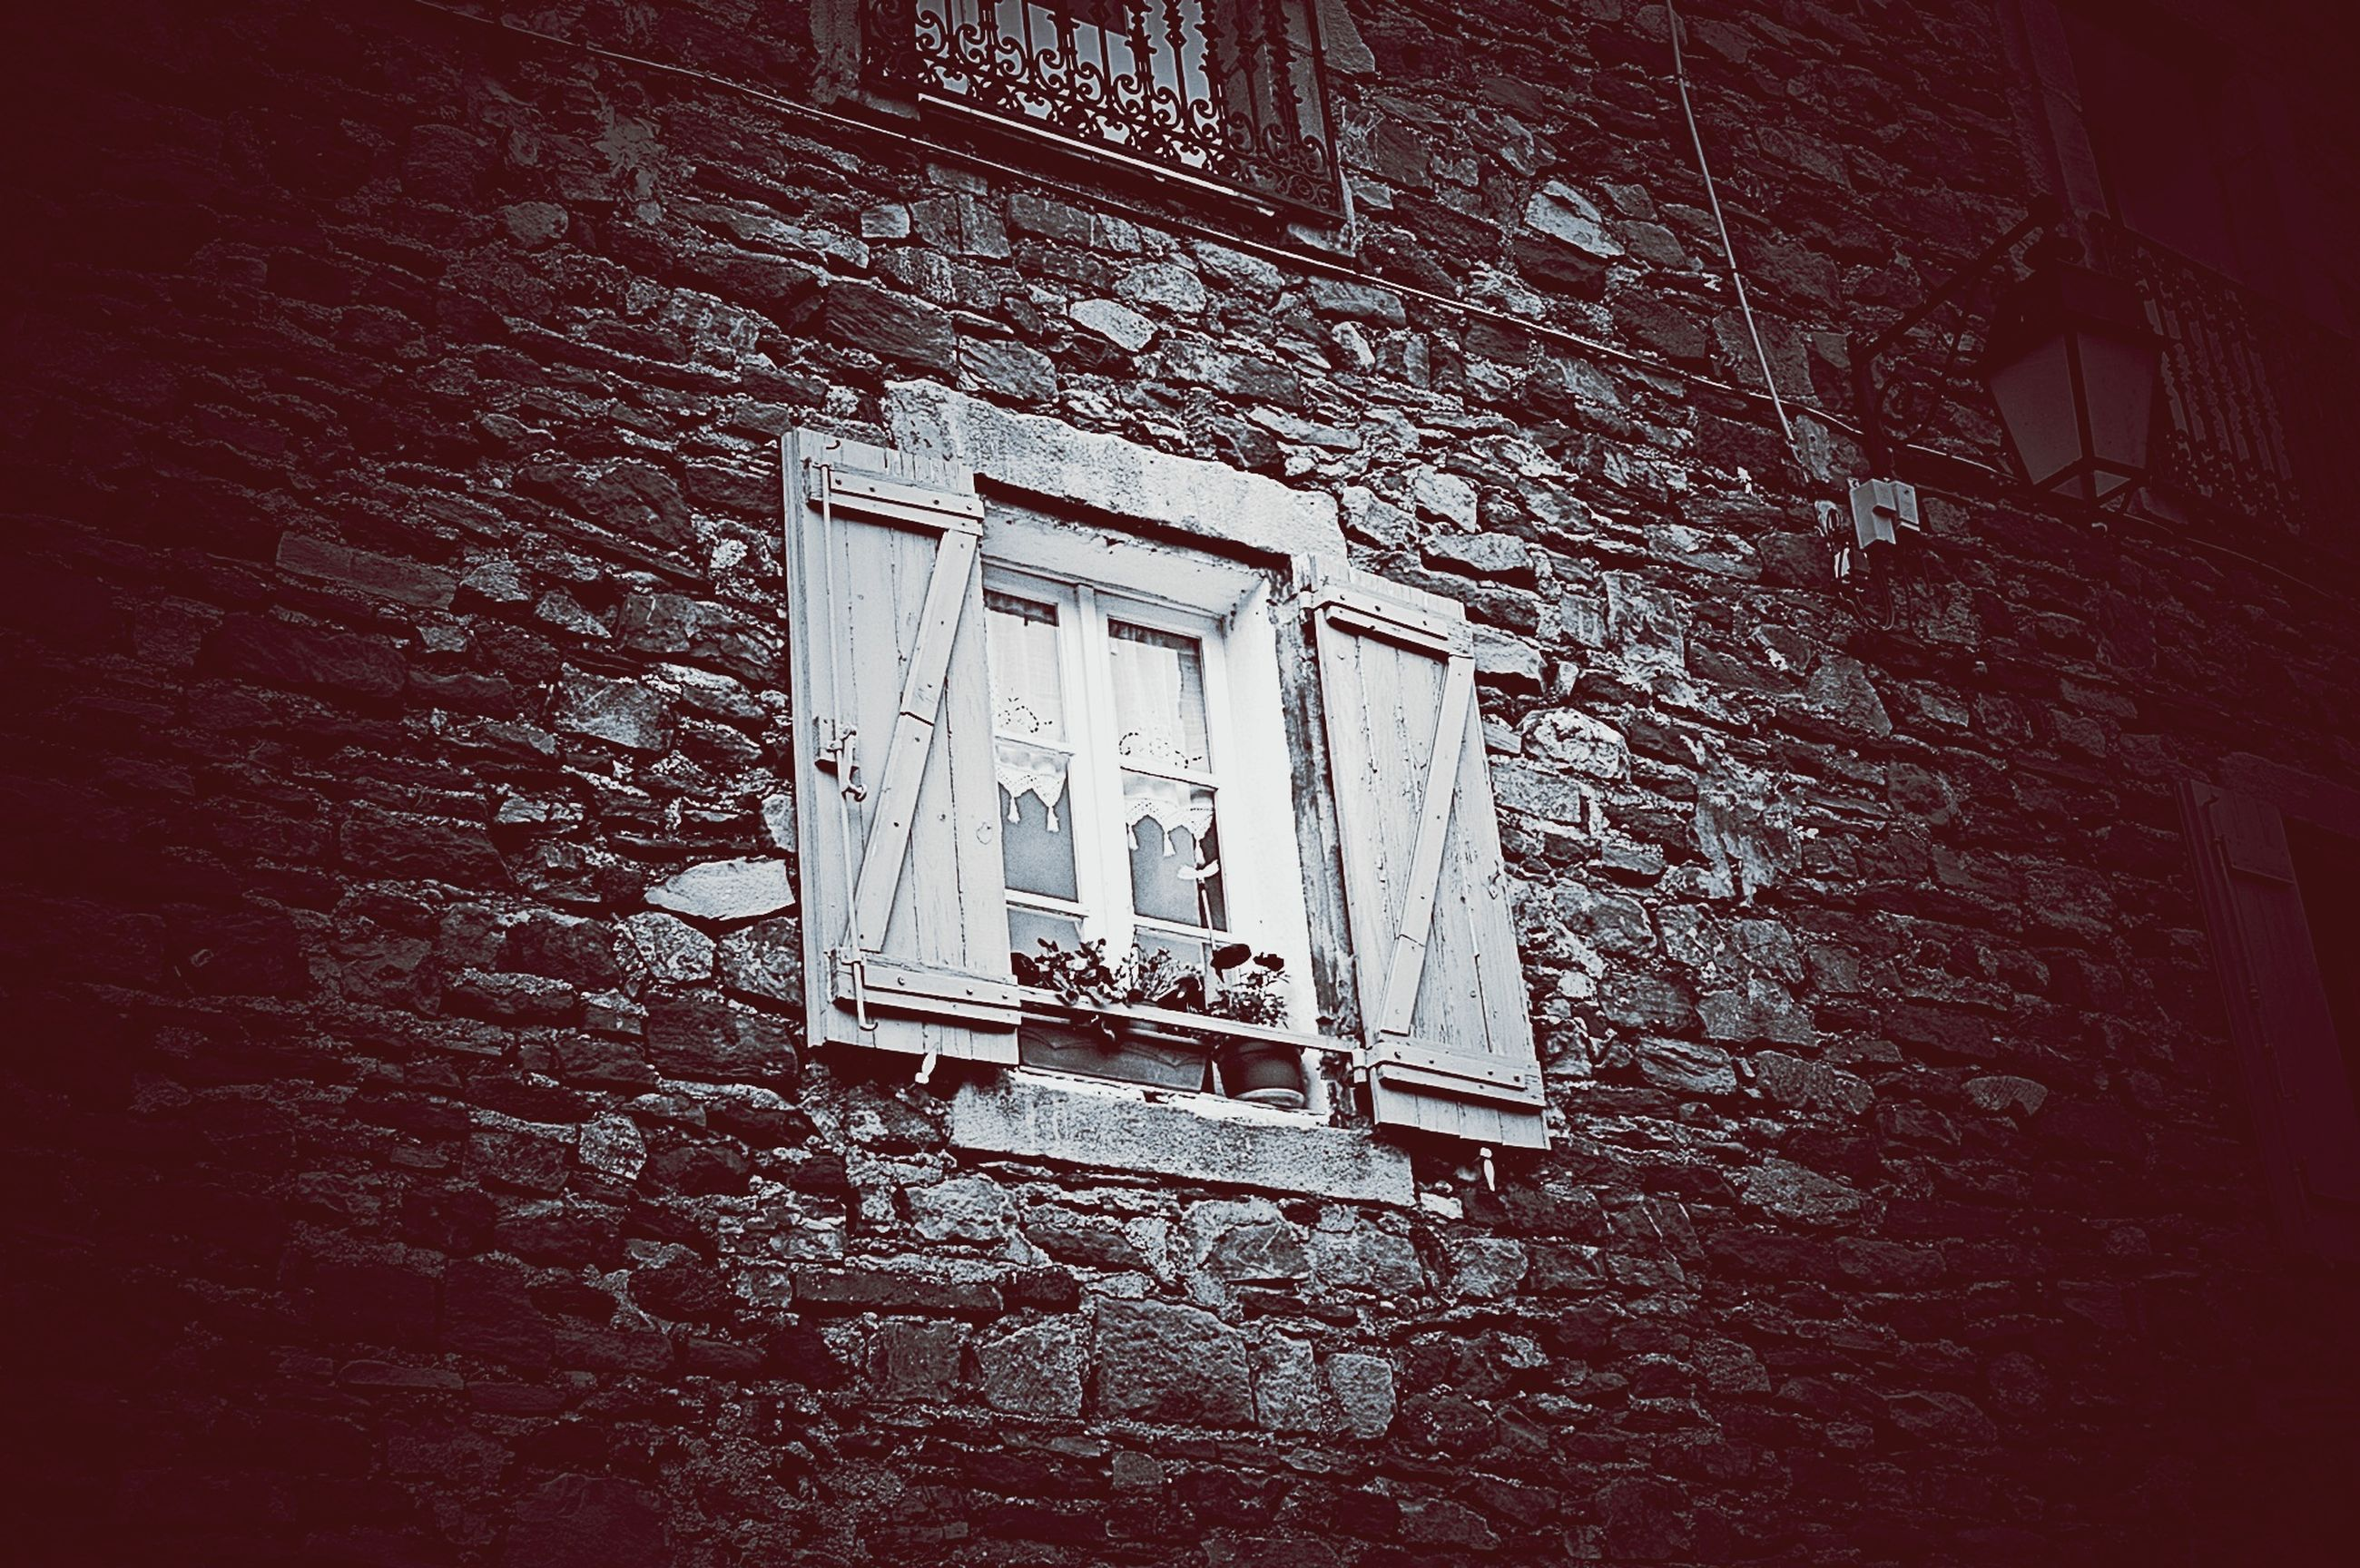 architecture, built structure, wall - building feature, building exterior, window, door, wall, old, house, indoors, closed, no people, abandoned, brick wall, day, wood - material, text, communication, close-up, damaged